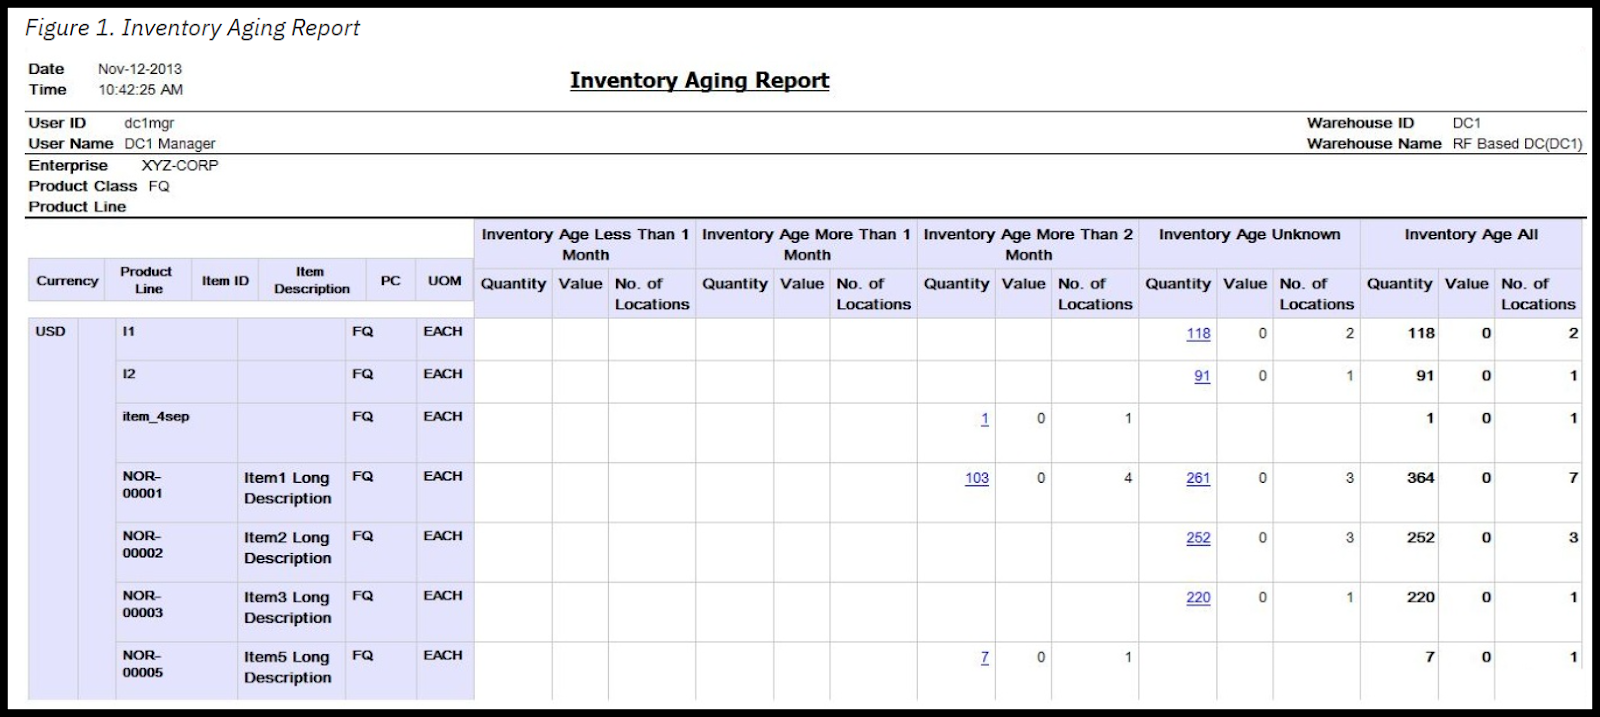 Sample Inventory Aging Report Generated in IBM